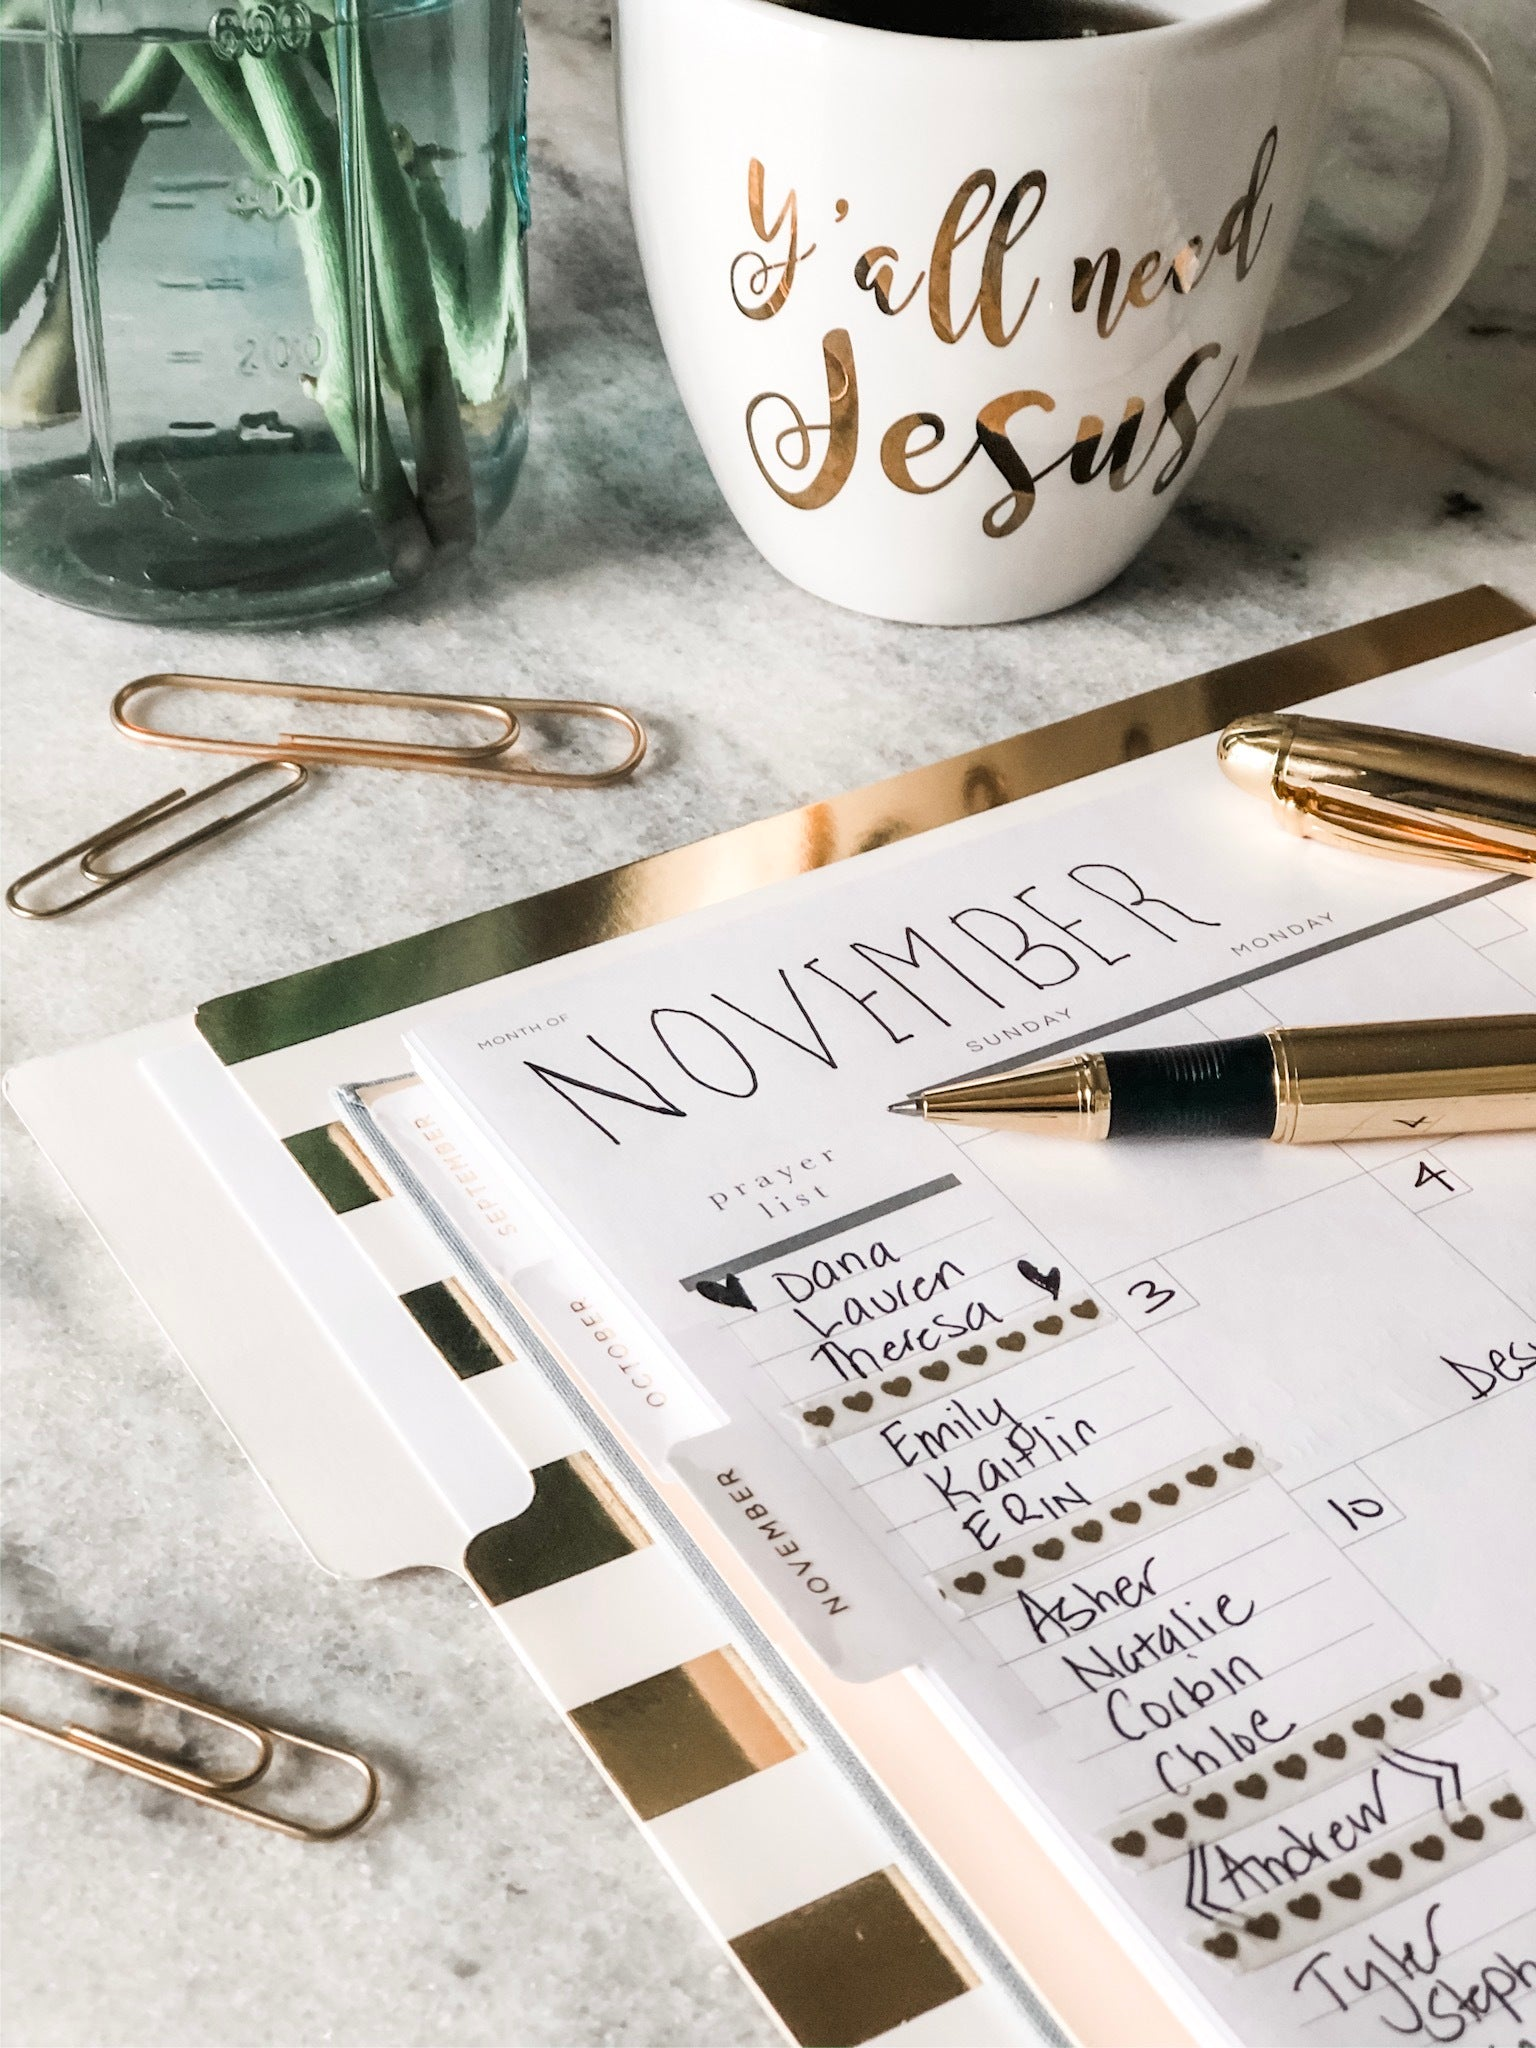 important features of a Christian planner